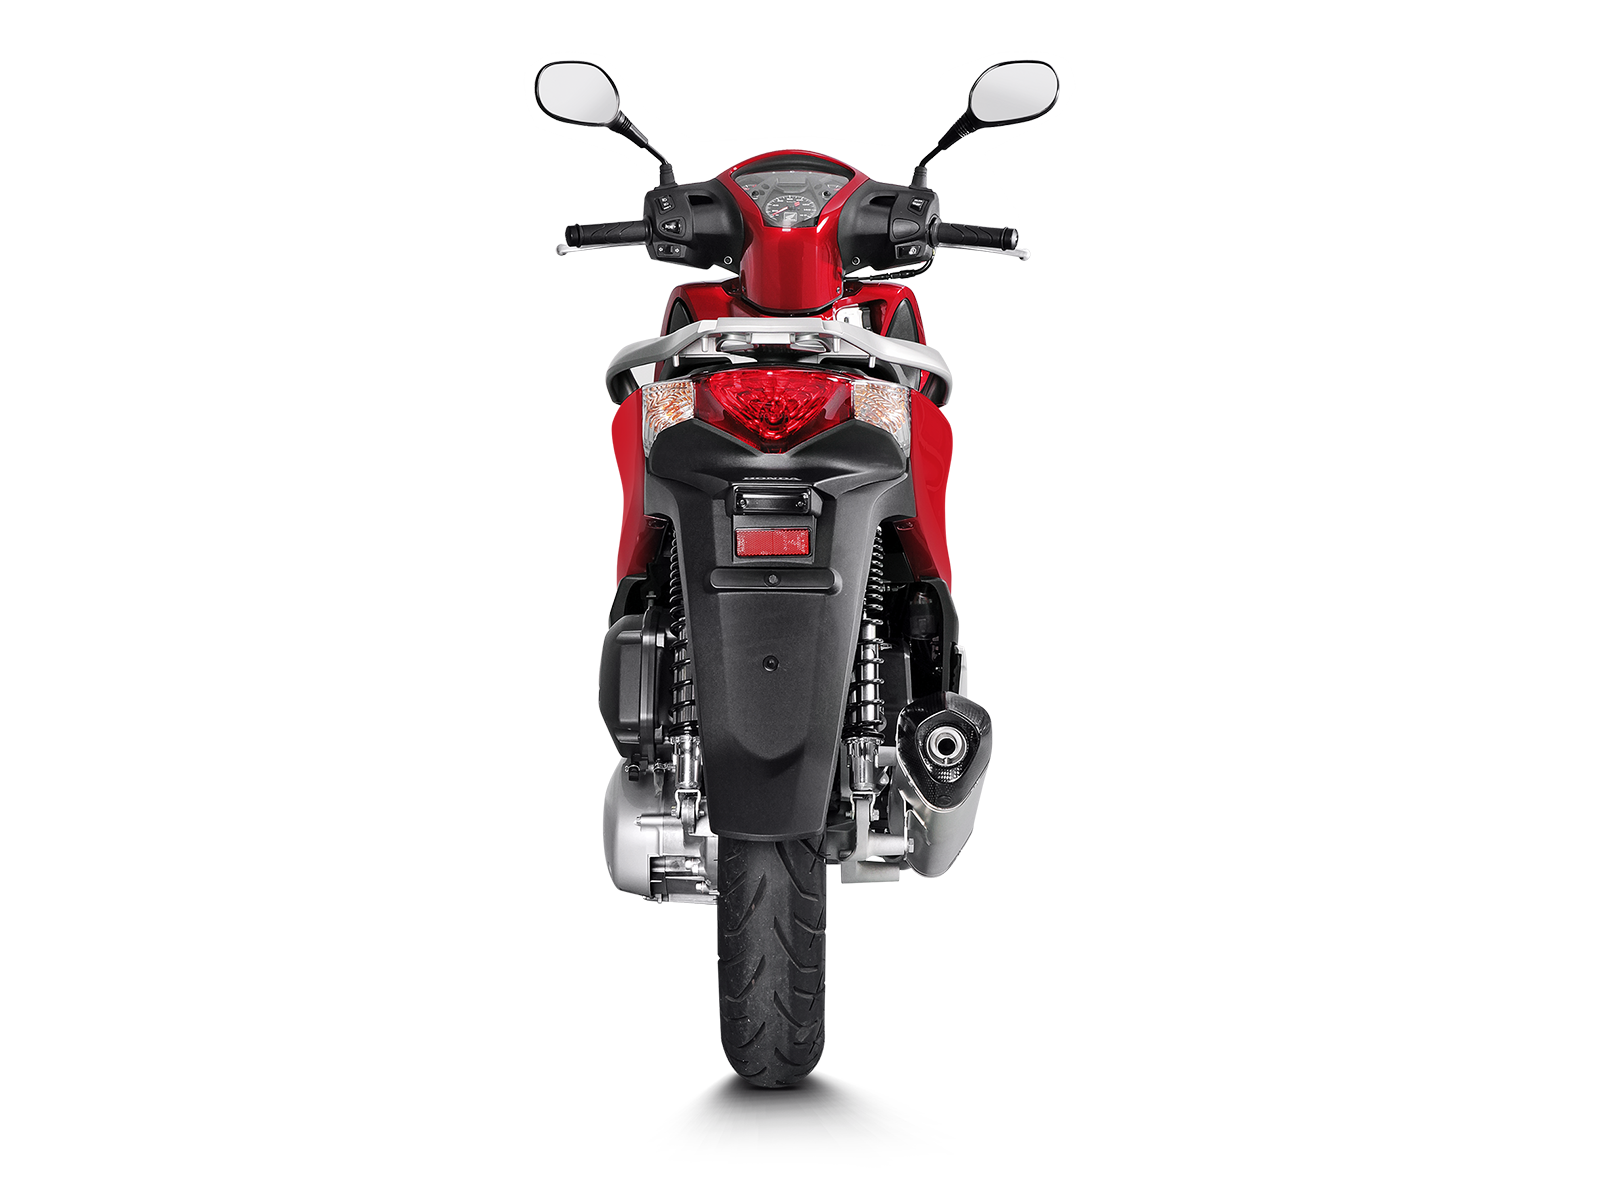 Motorcycle clipart back. View png download free